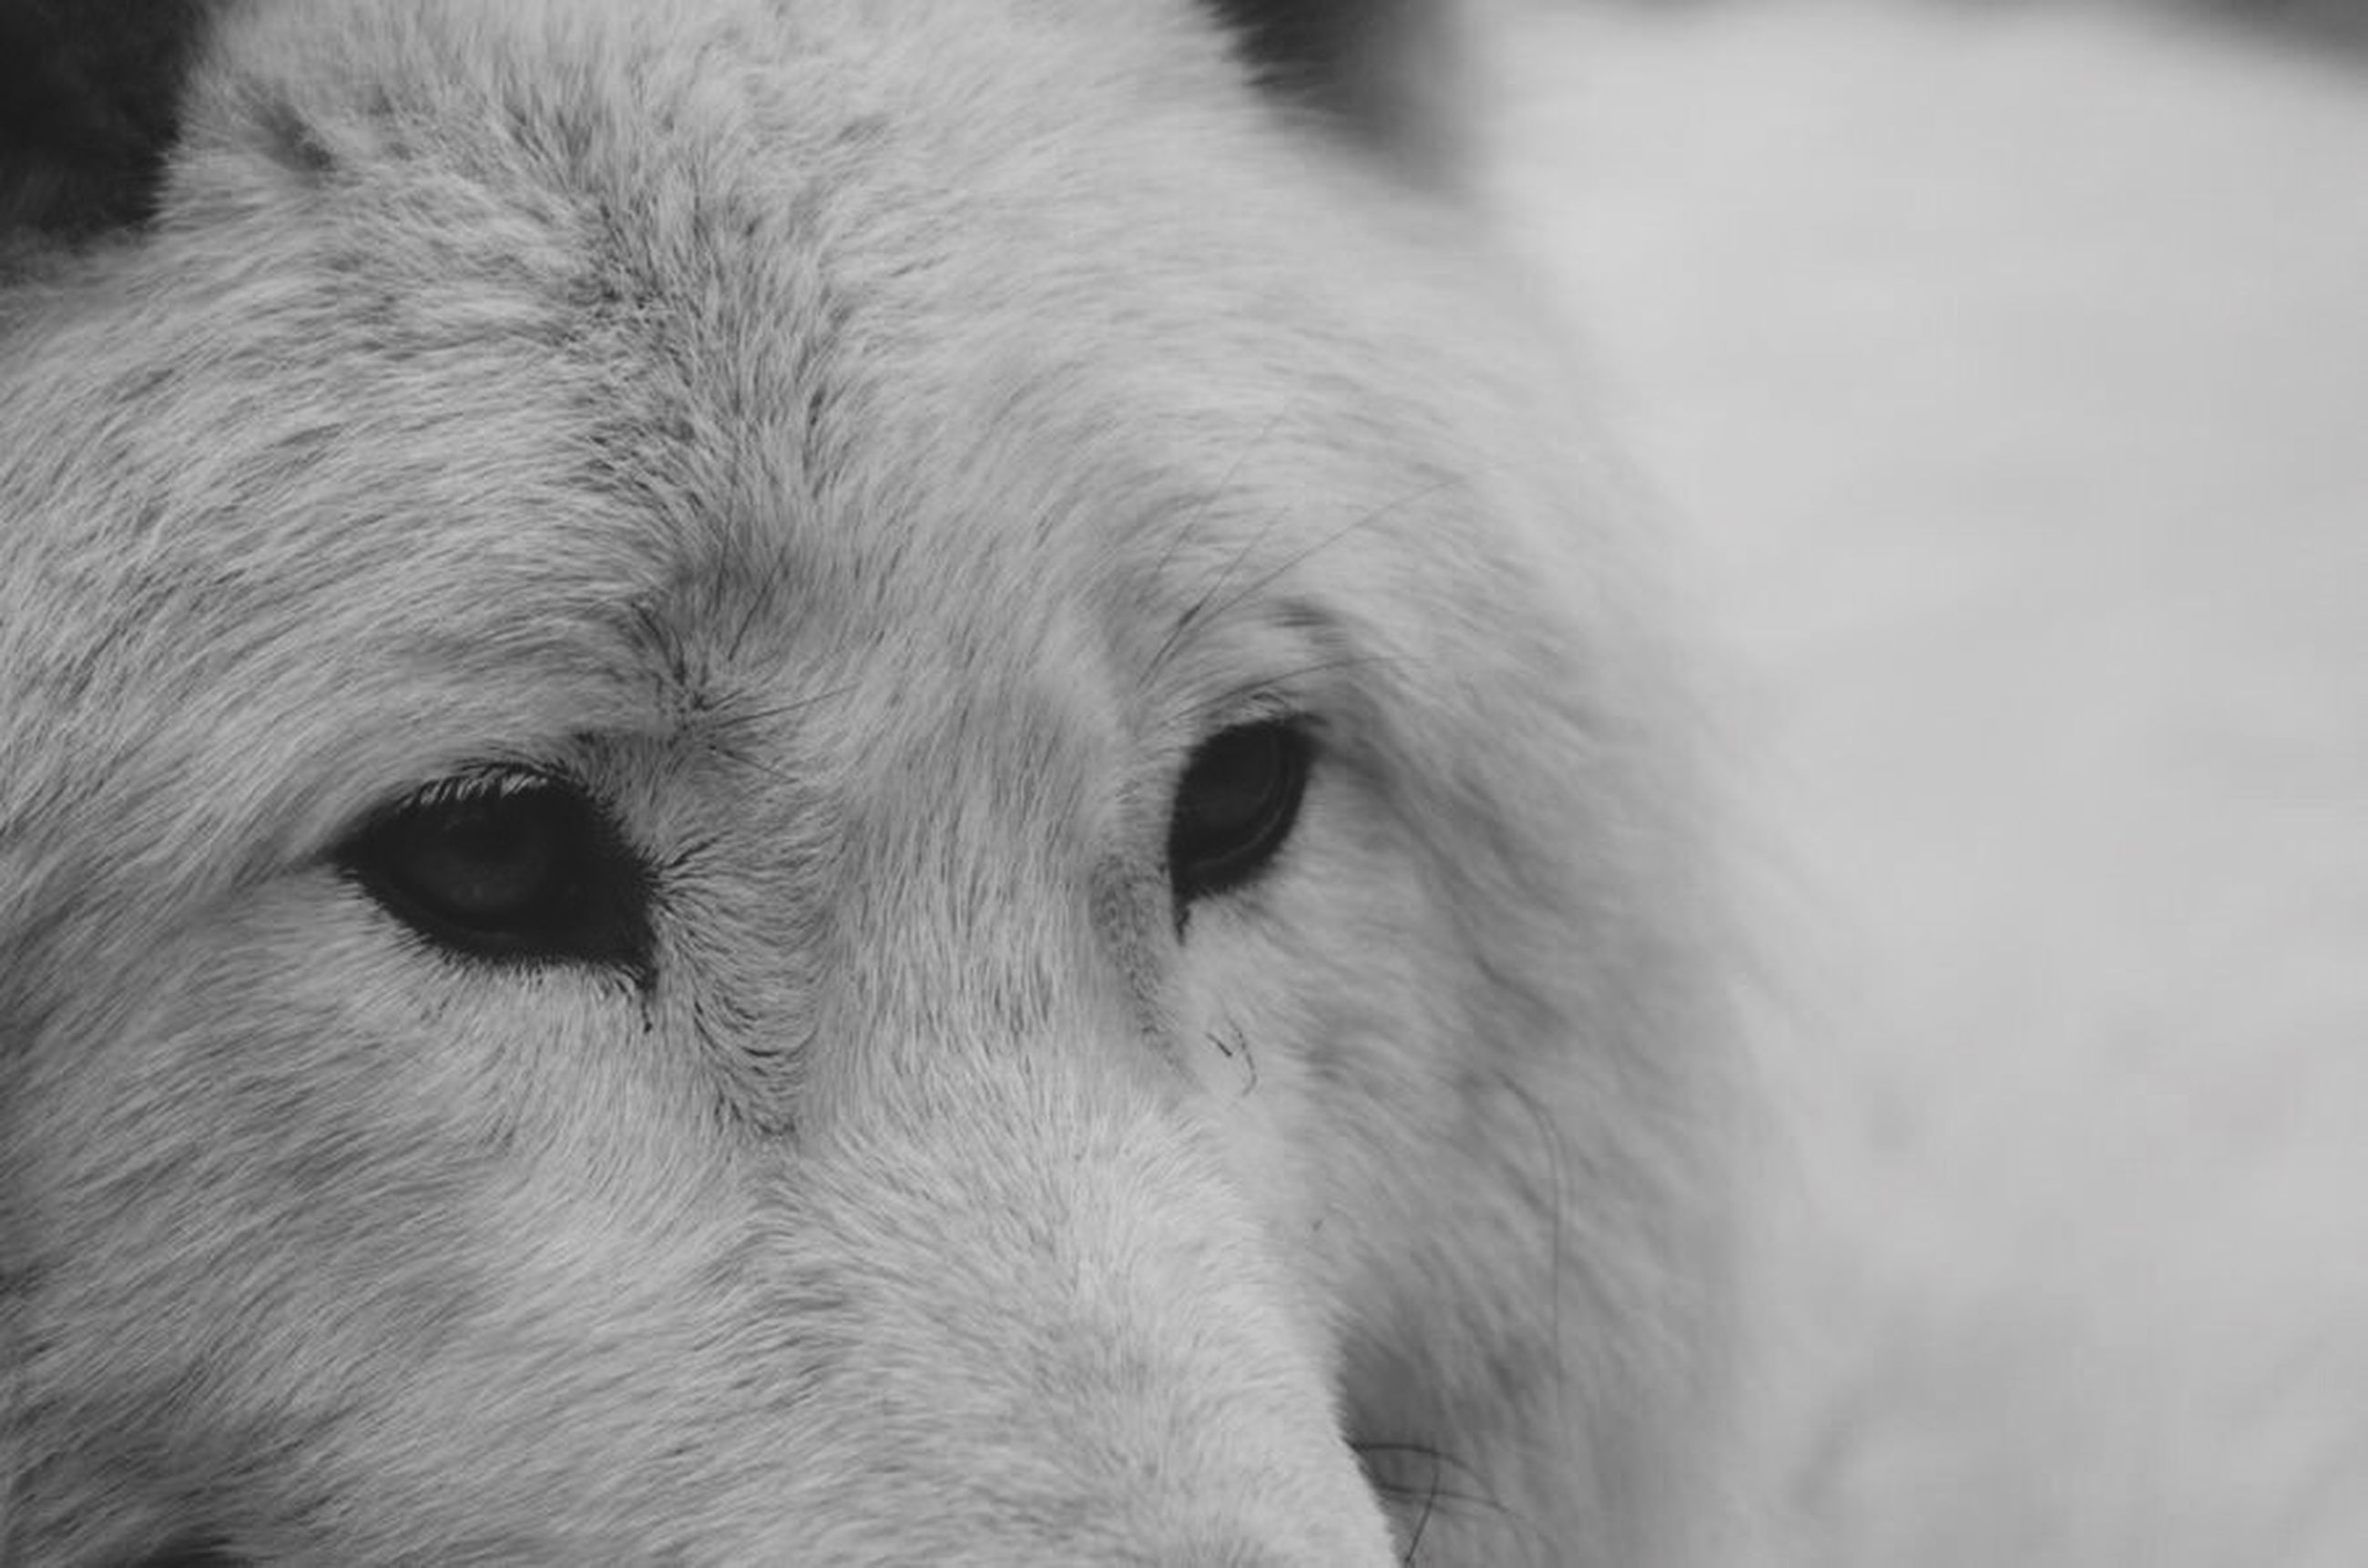 animal themes, one animal, domestic animals, mammal, animal head, animal body part, close-up, pets, dog, focus on foreground, white color, animal hair, part of, portrait, livestock, zoology, looking away, no people, animal eye